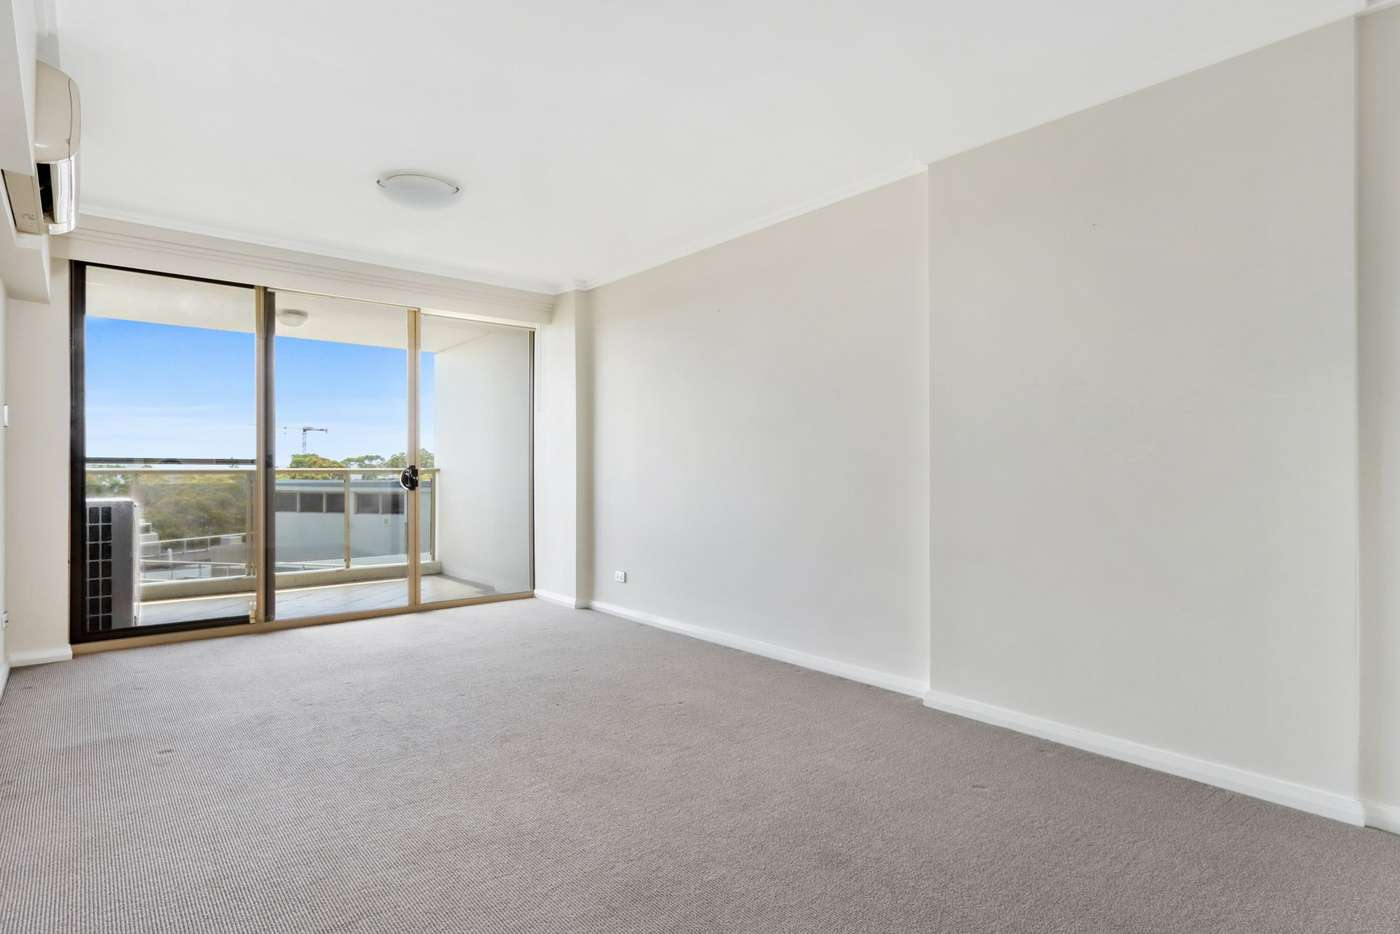 Main view of Homely apartment listing, 161/360 Kingsway, Caringbah NSW 2229